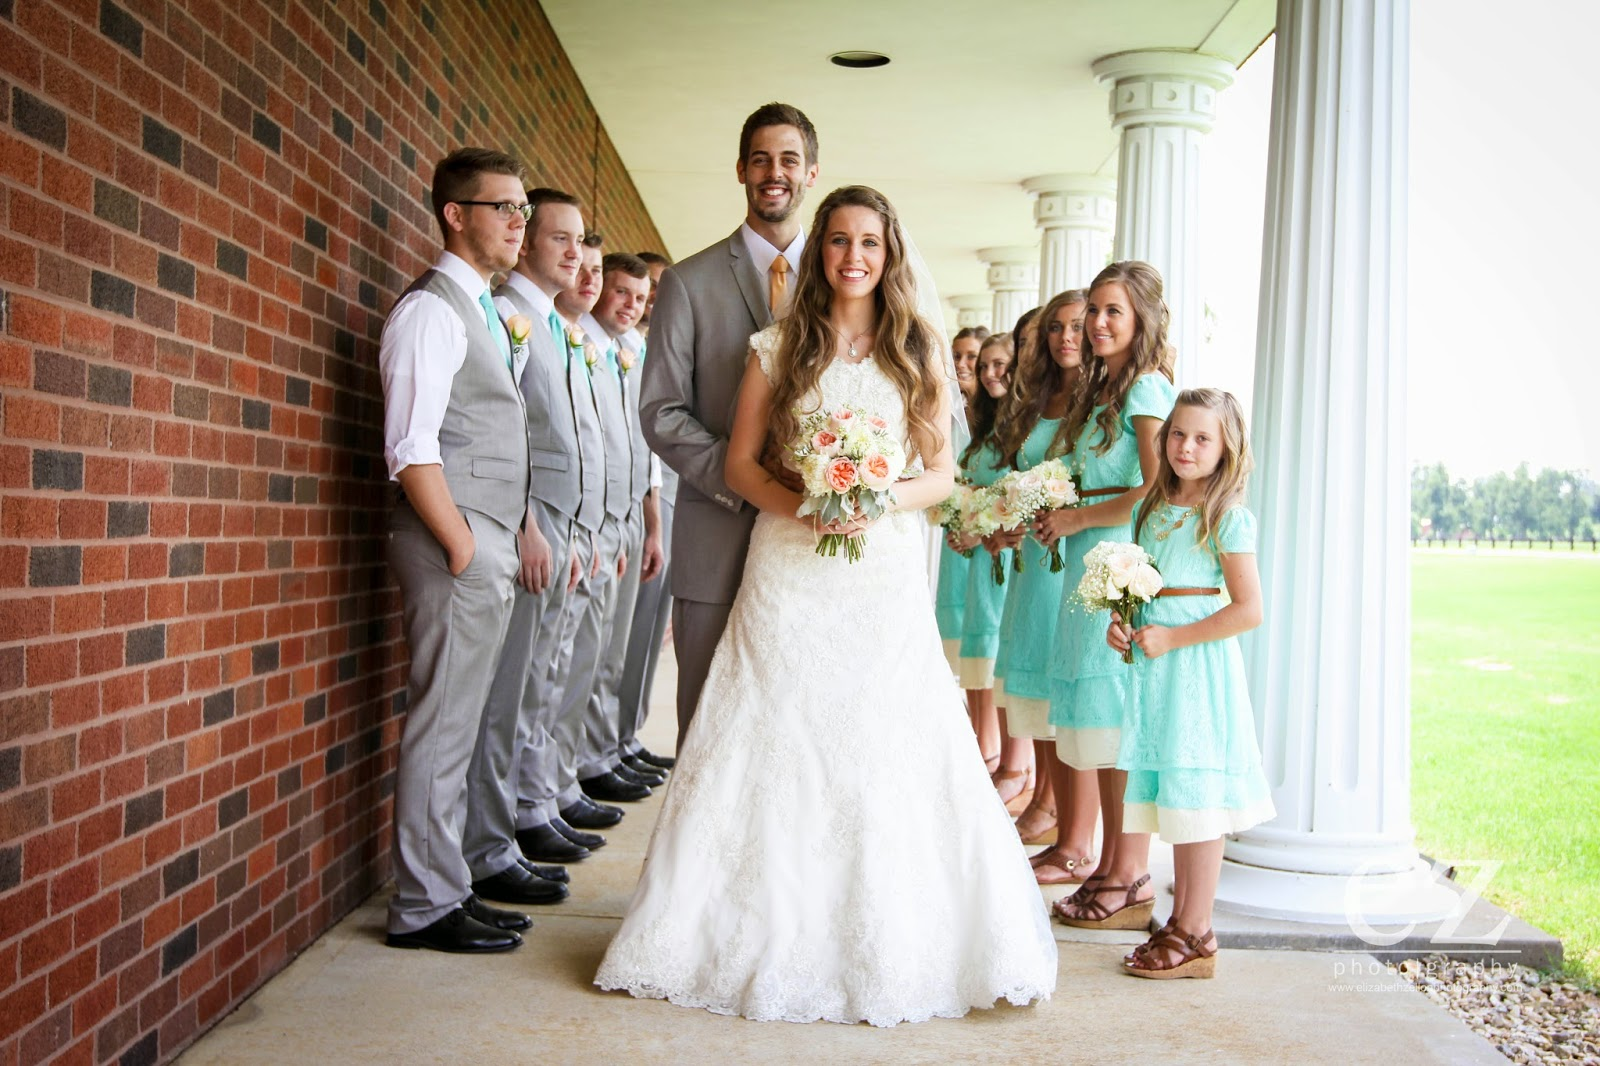 Duggar jill wedding pictures